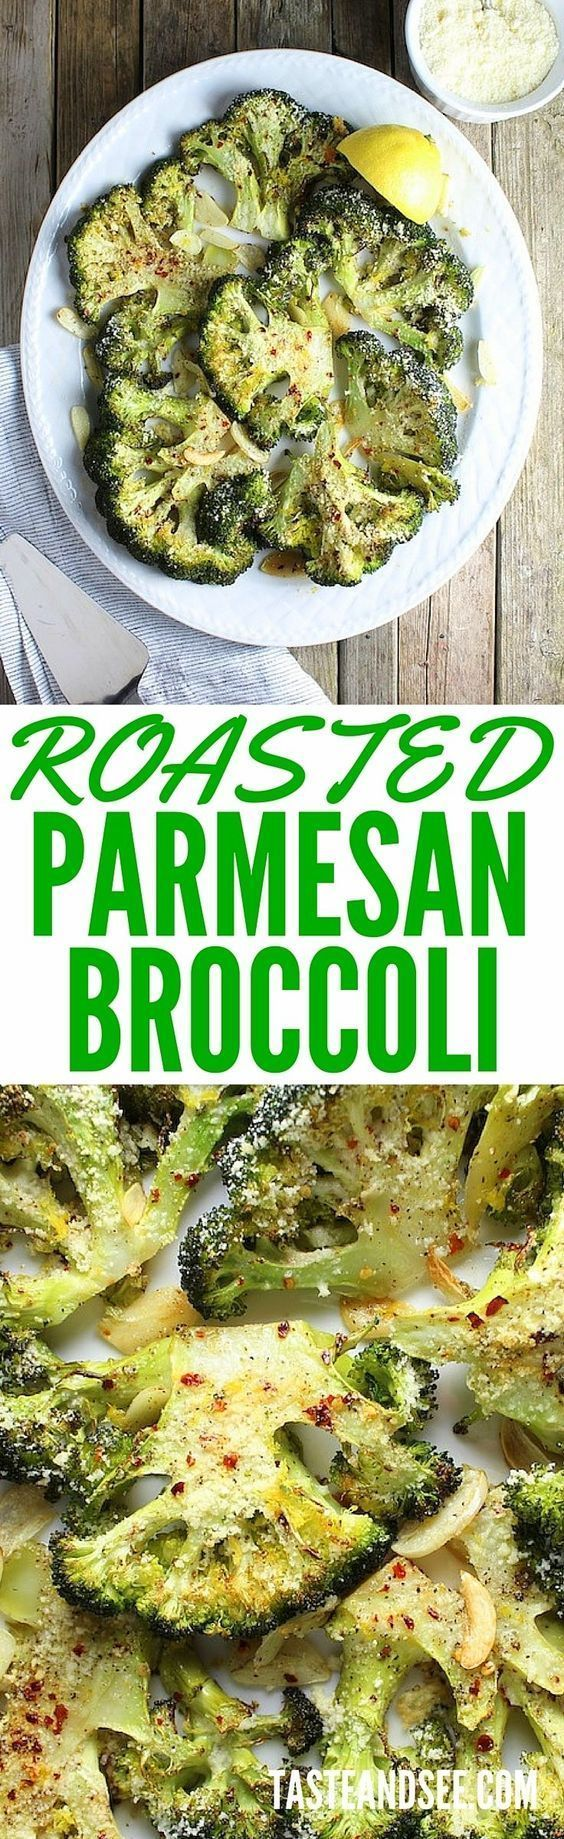 Roasted Parmesan Broccoli - Roasted with olive oil Parmesan cheese sliced…